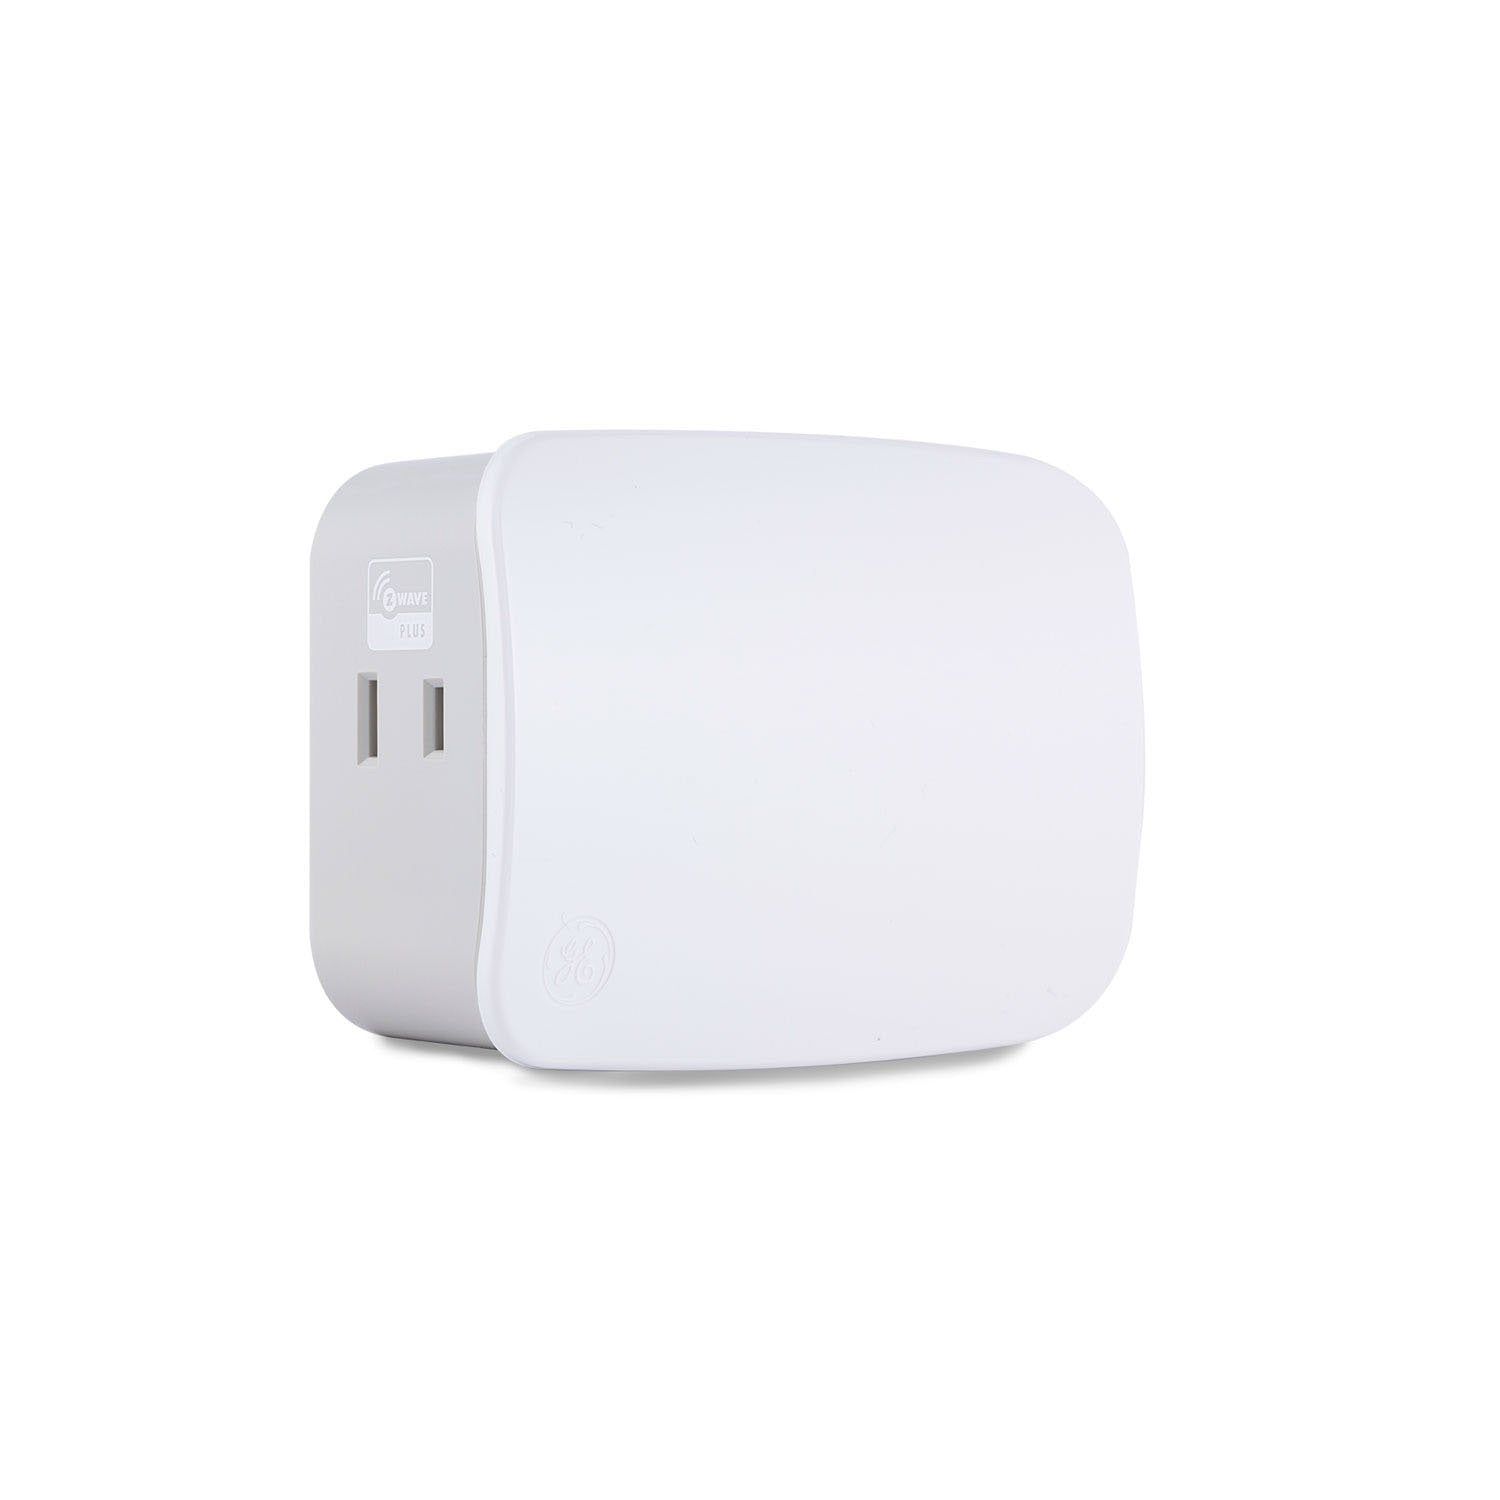 GE Plug-In Dimmer (Two Outlet) (for Works with Ring Alarm Security System) - White